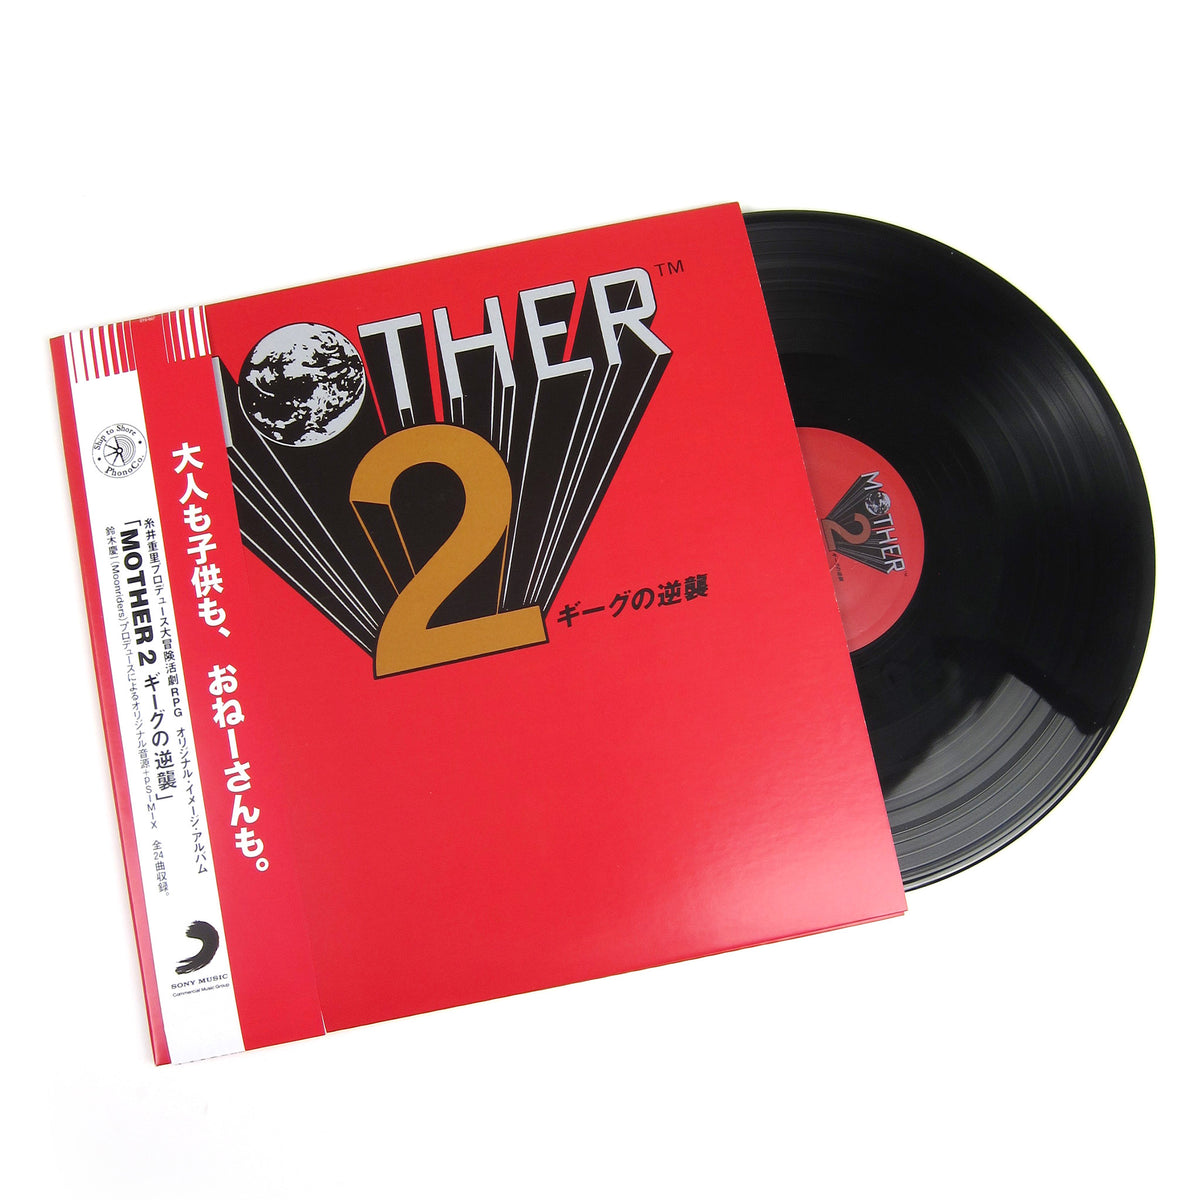 Keiichi Suzuki: Mother 2 Soundtrack Vinyl 2LP